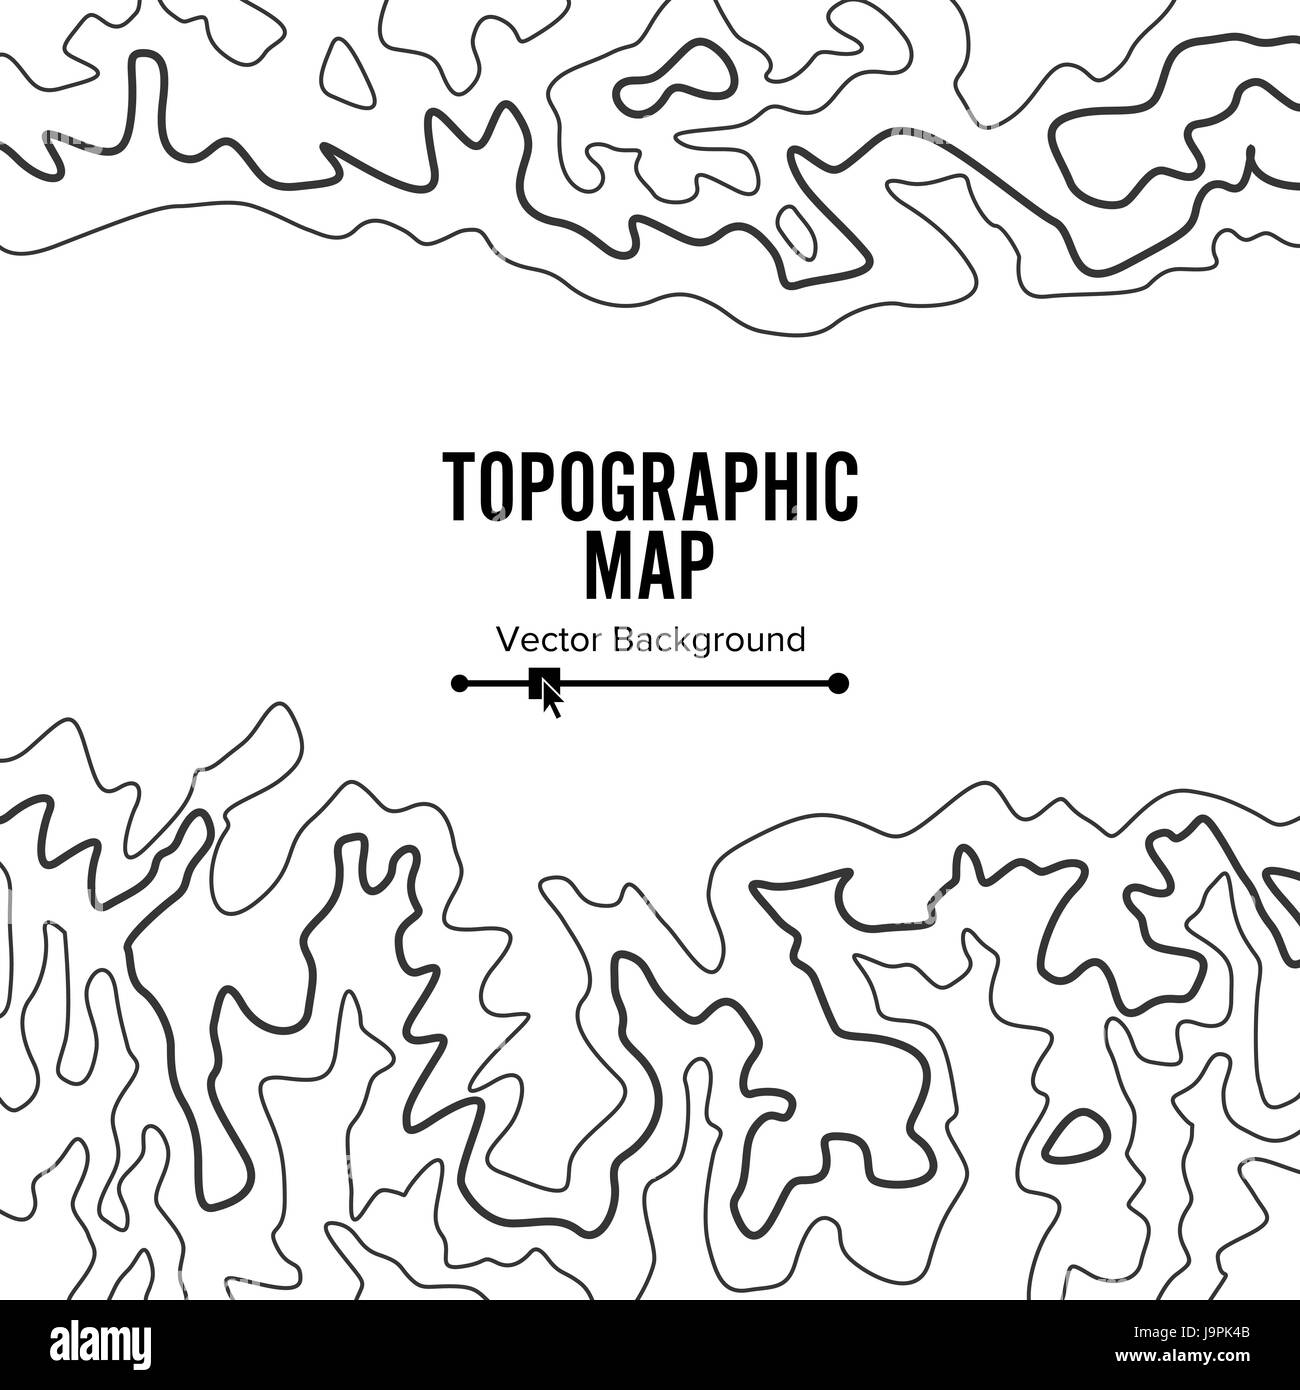 Contour Topographic Map Vector. Geography Wavy Backdrop. Cartography Graphic Concept. - Stock Image